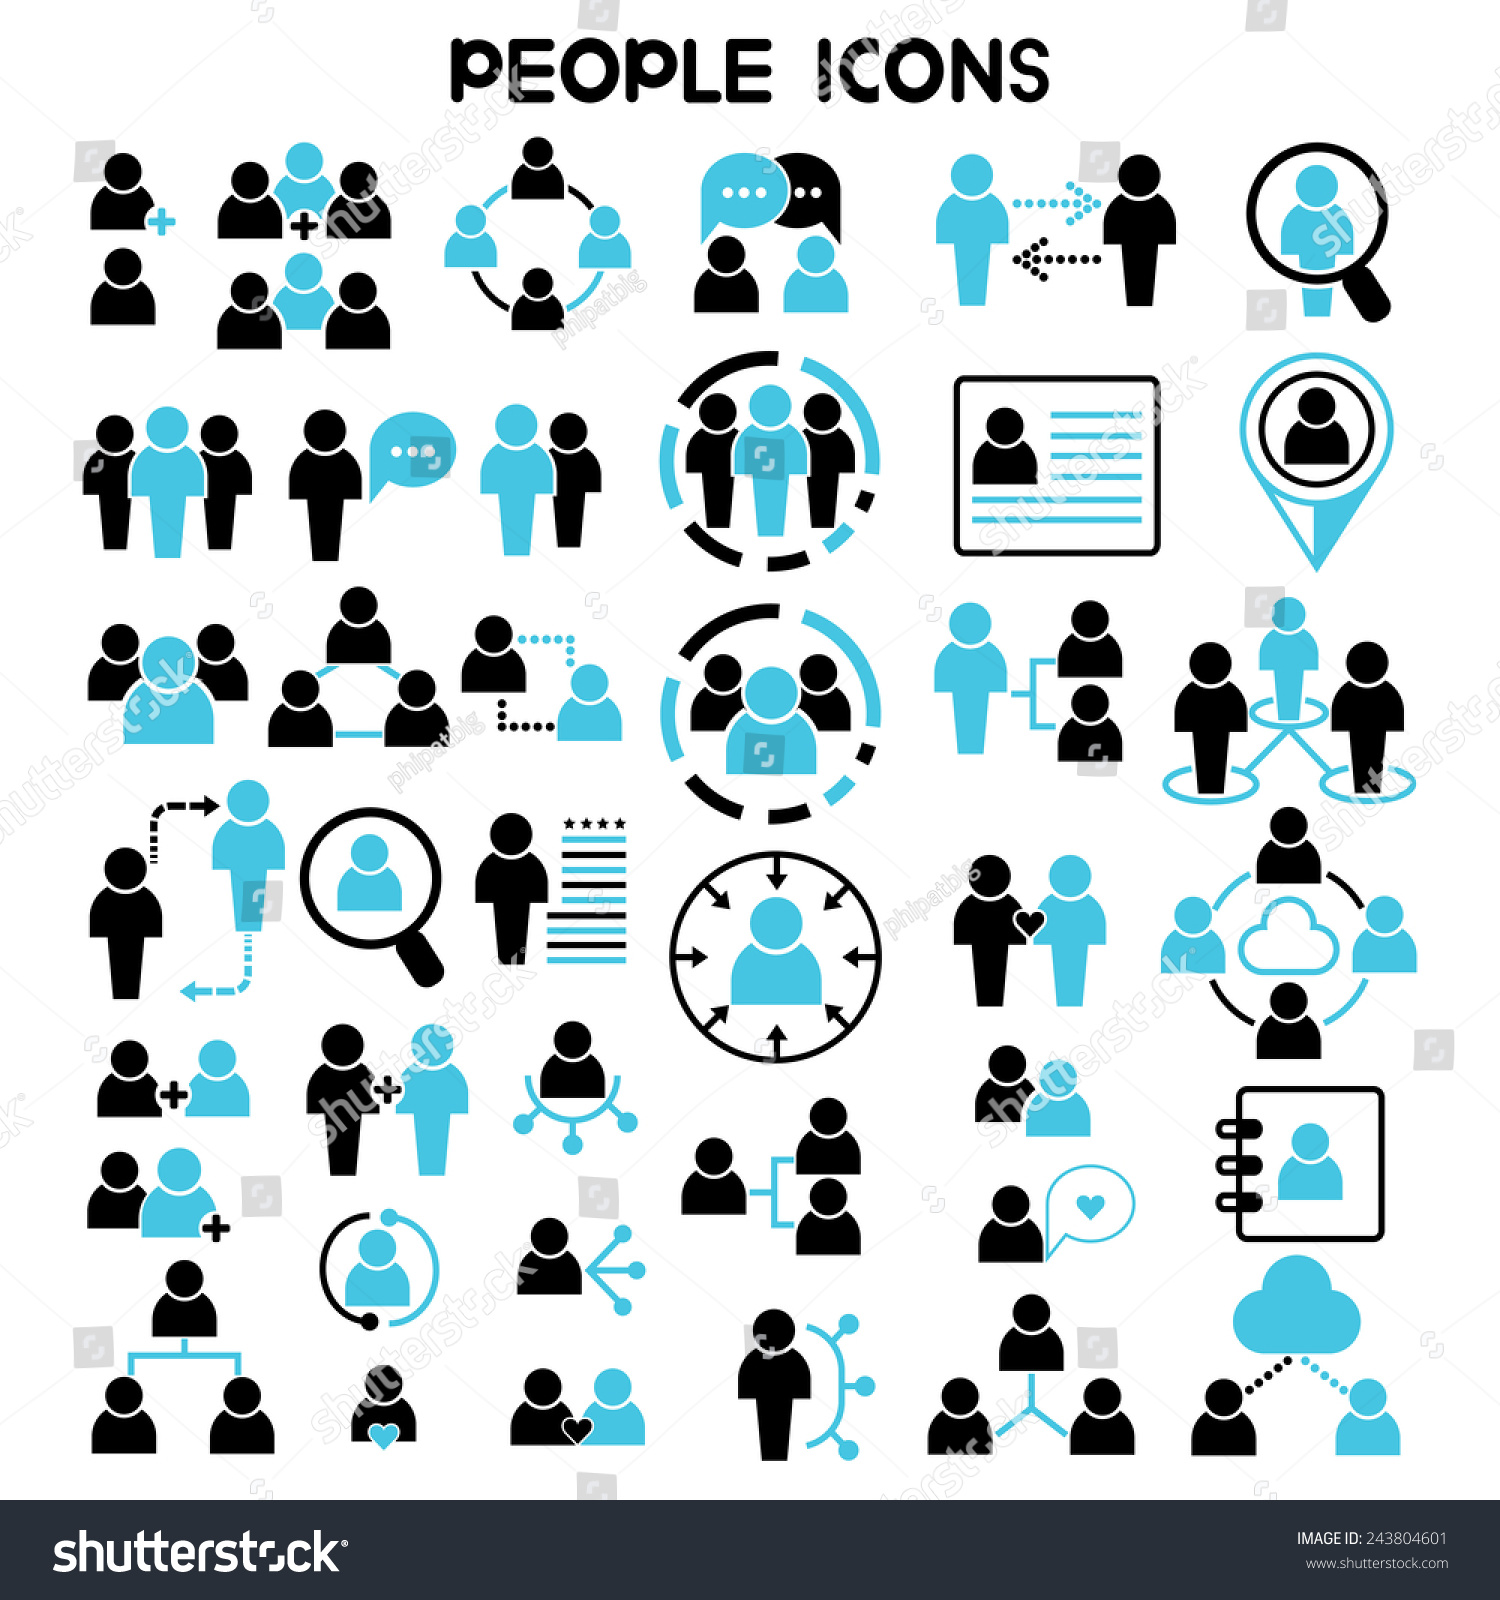 people icons vector set people network stock vector  people icons vector set people network icons human resources and management icons